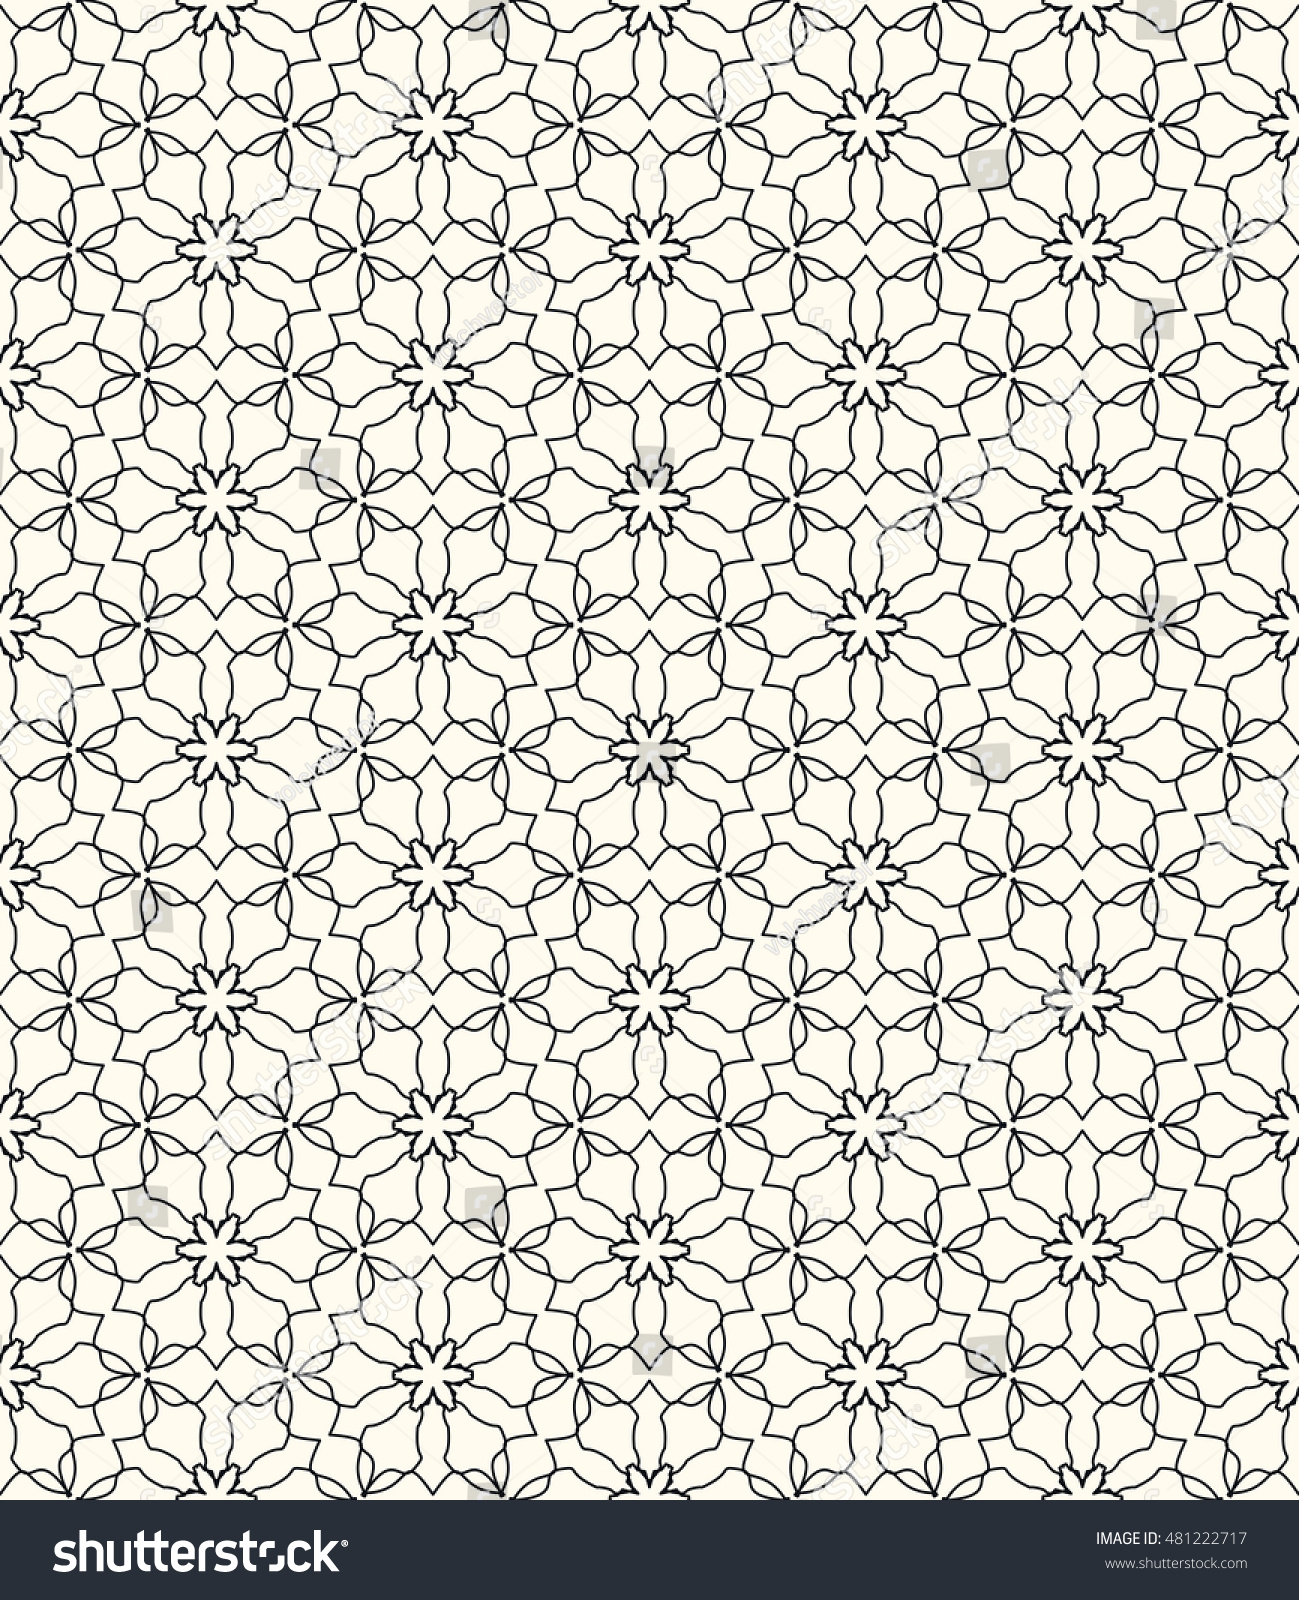 Line Texture Pattern : Seamless geometric line pattern contemporary graphic stock